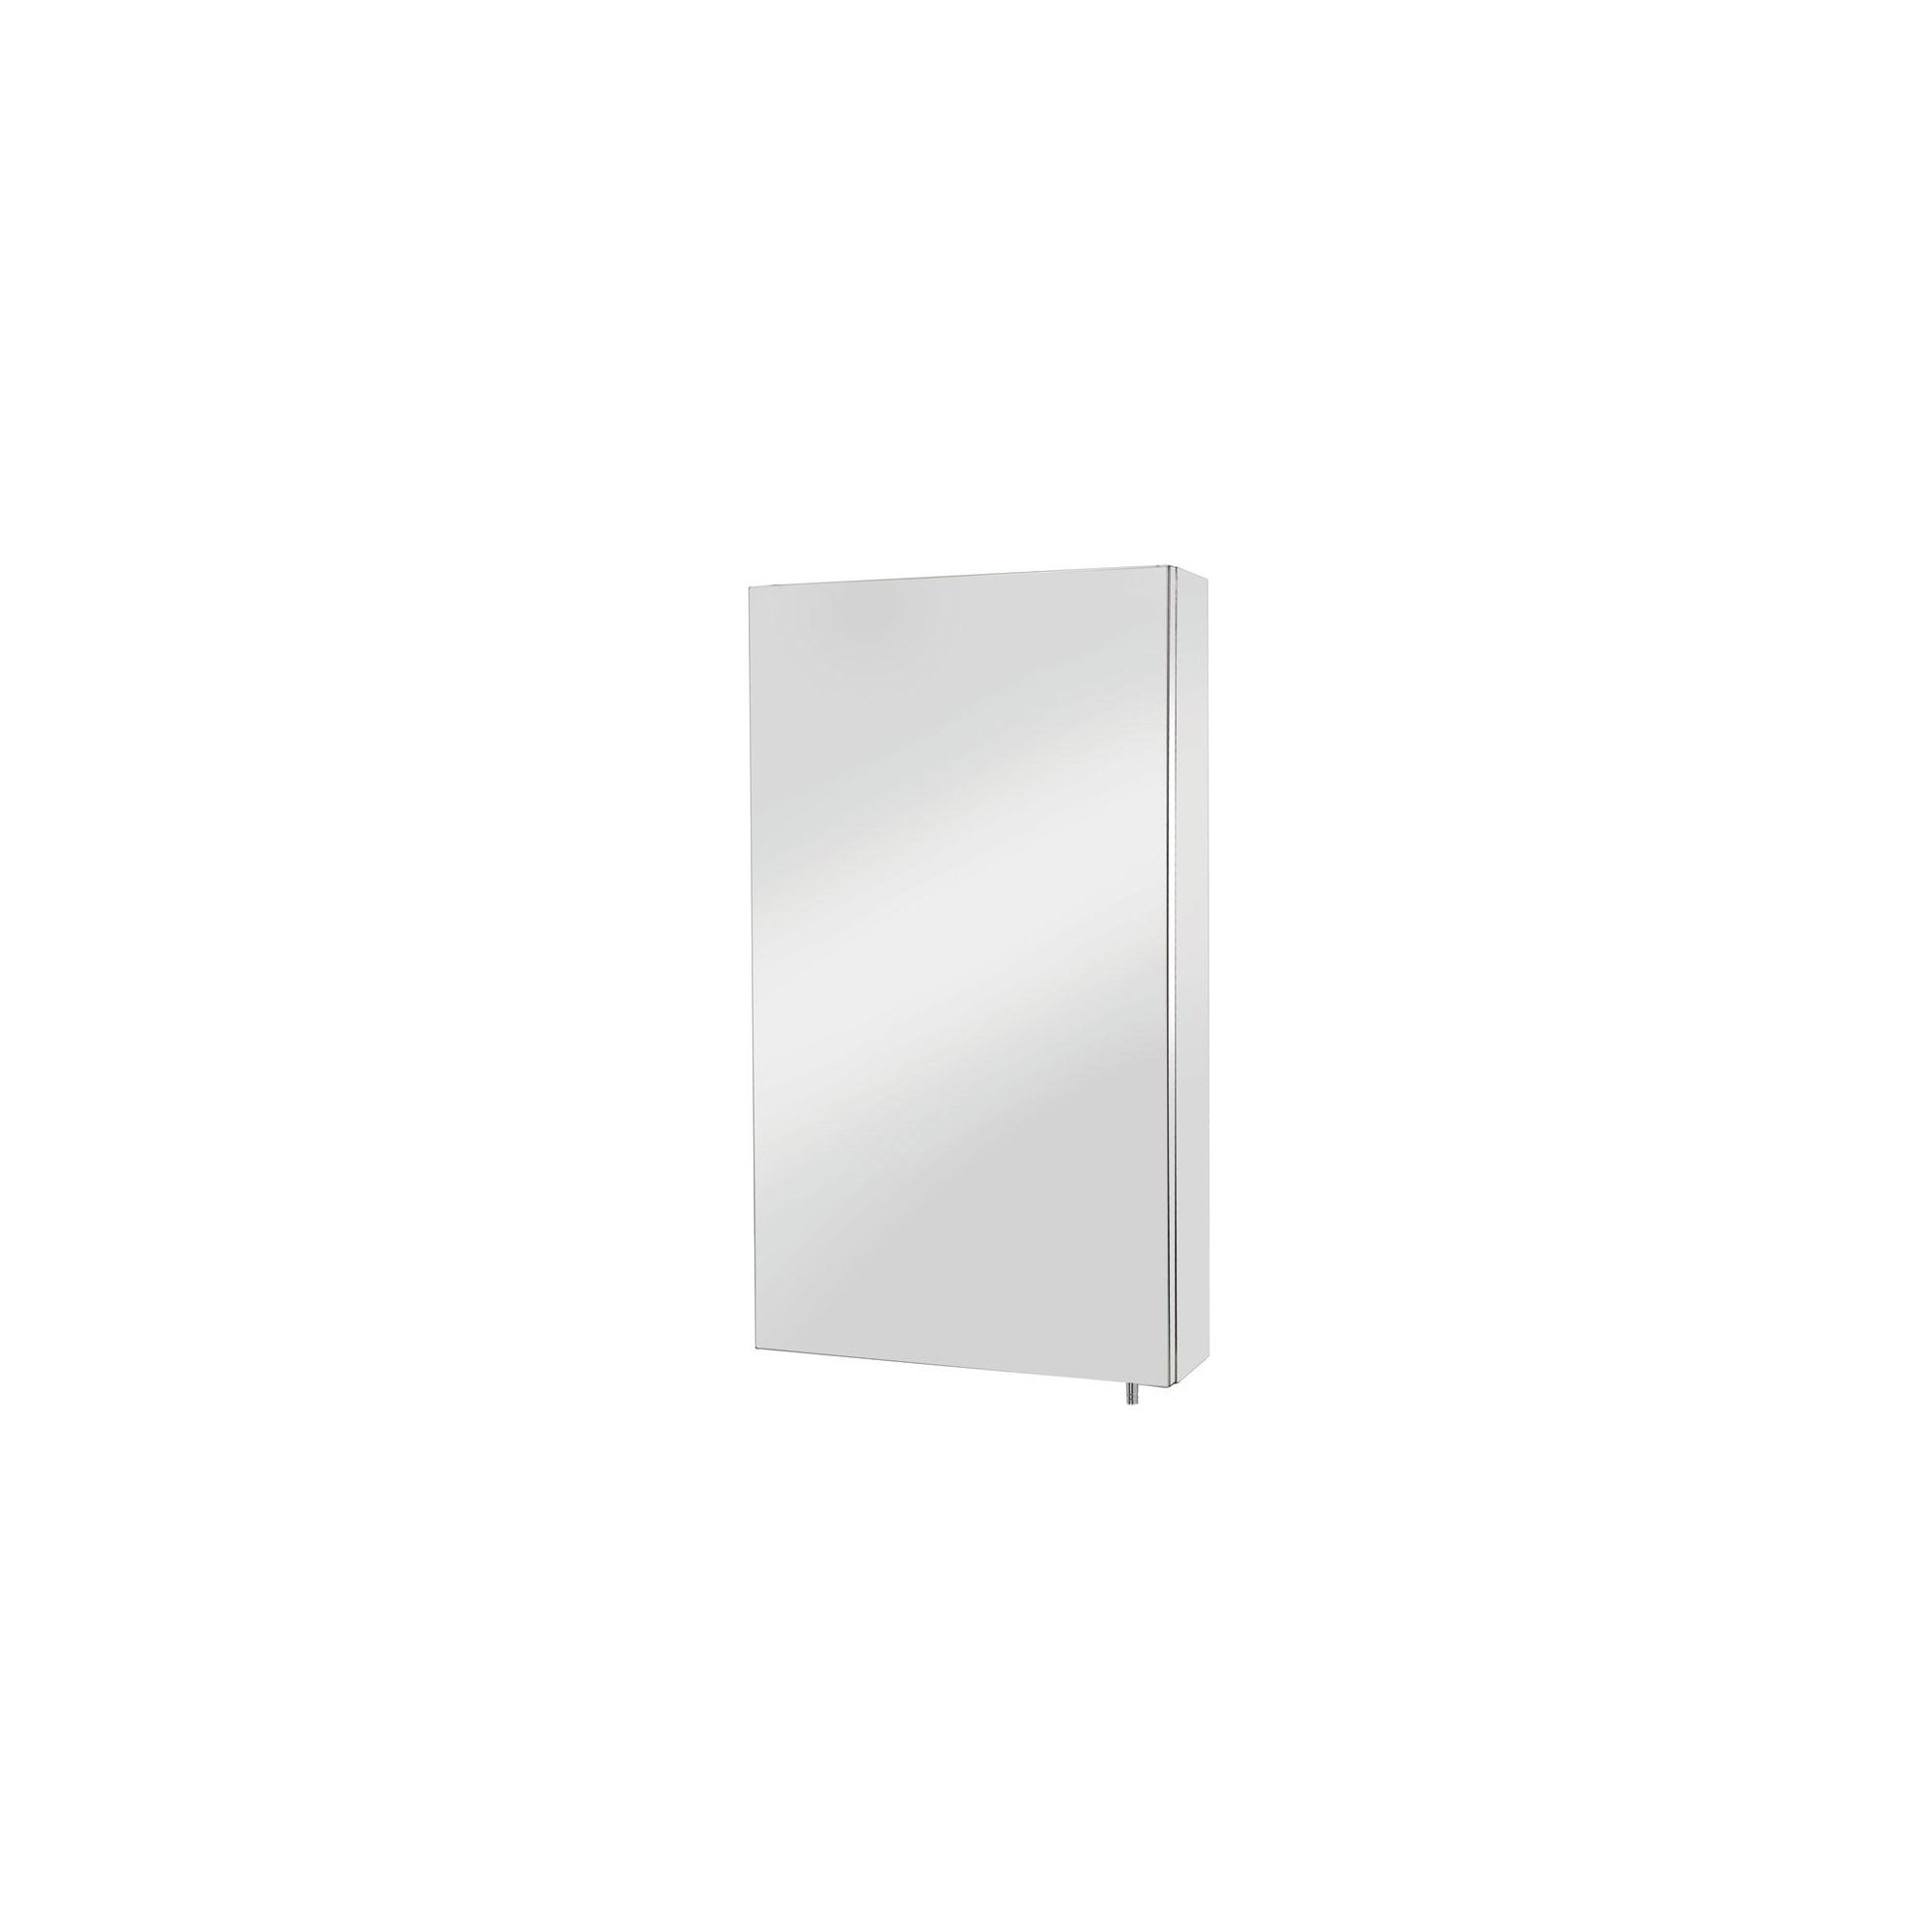 Croydex Anton Standard Single Door Stainless Steel Bathroom Cabinet